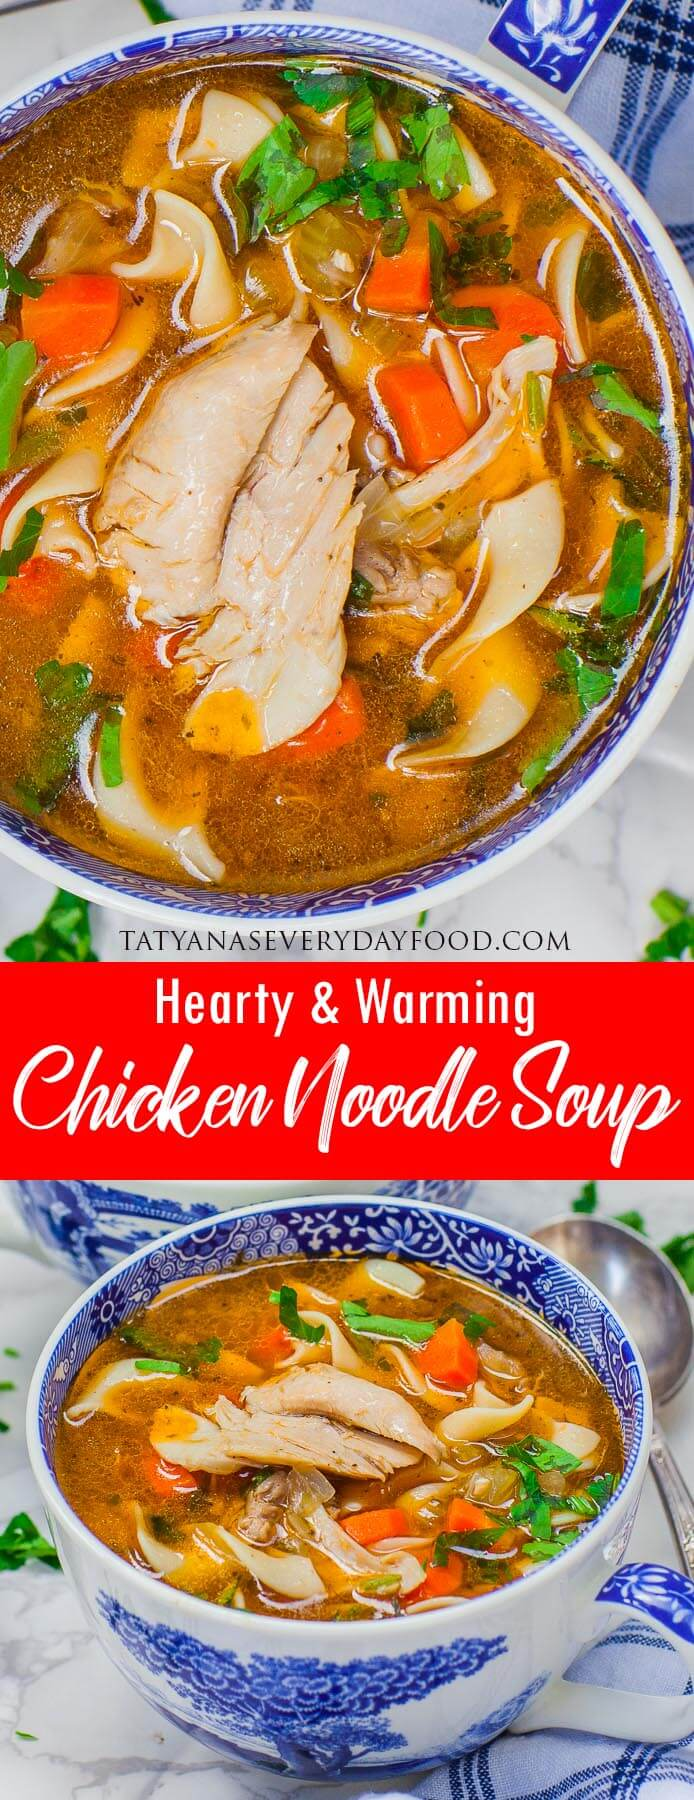 Chicken Noodle Soup video recipe